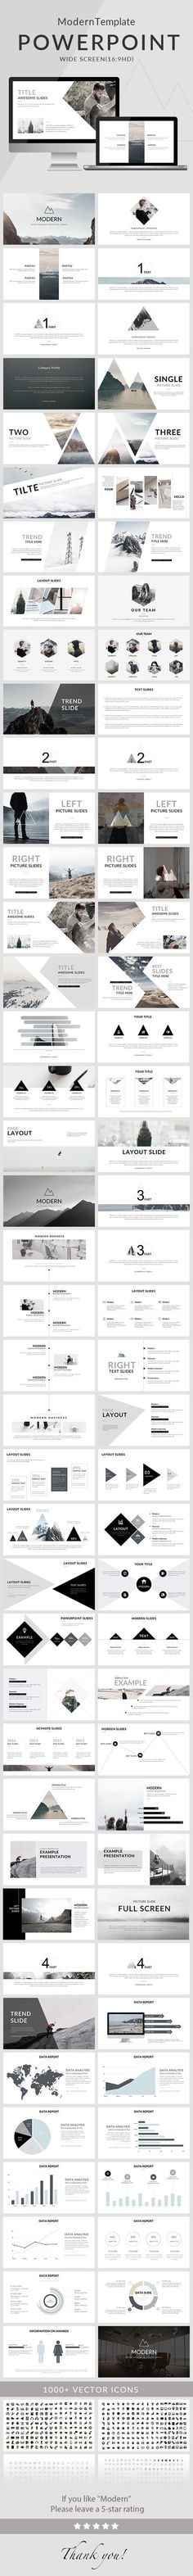 Nice and clean modern PowerPoint presentation template for creative presentations. 80 slides to emphasize the key points of the presentation and create a great impression on the viewers. Graphisches Design, Layout Design, Logo Design, Interior Design, Slide Design, Resume Design, Design Model, Cover Design, Creative Design